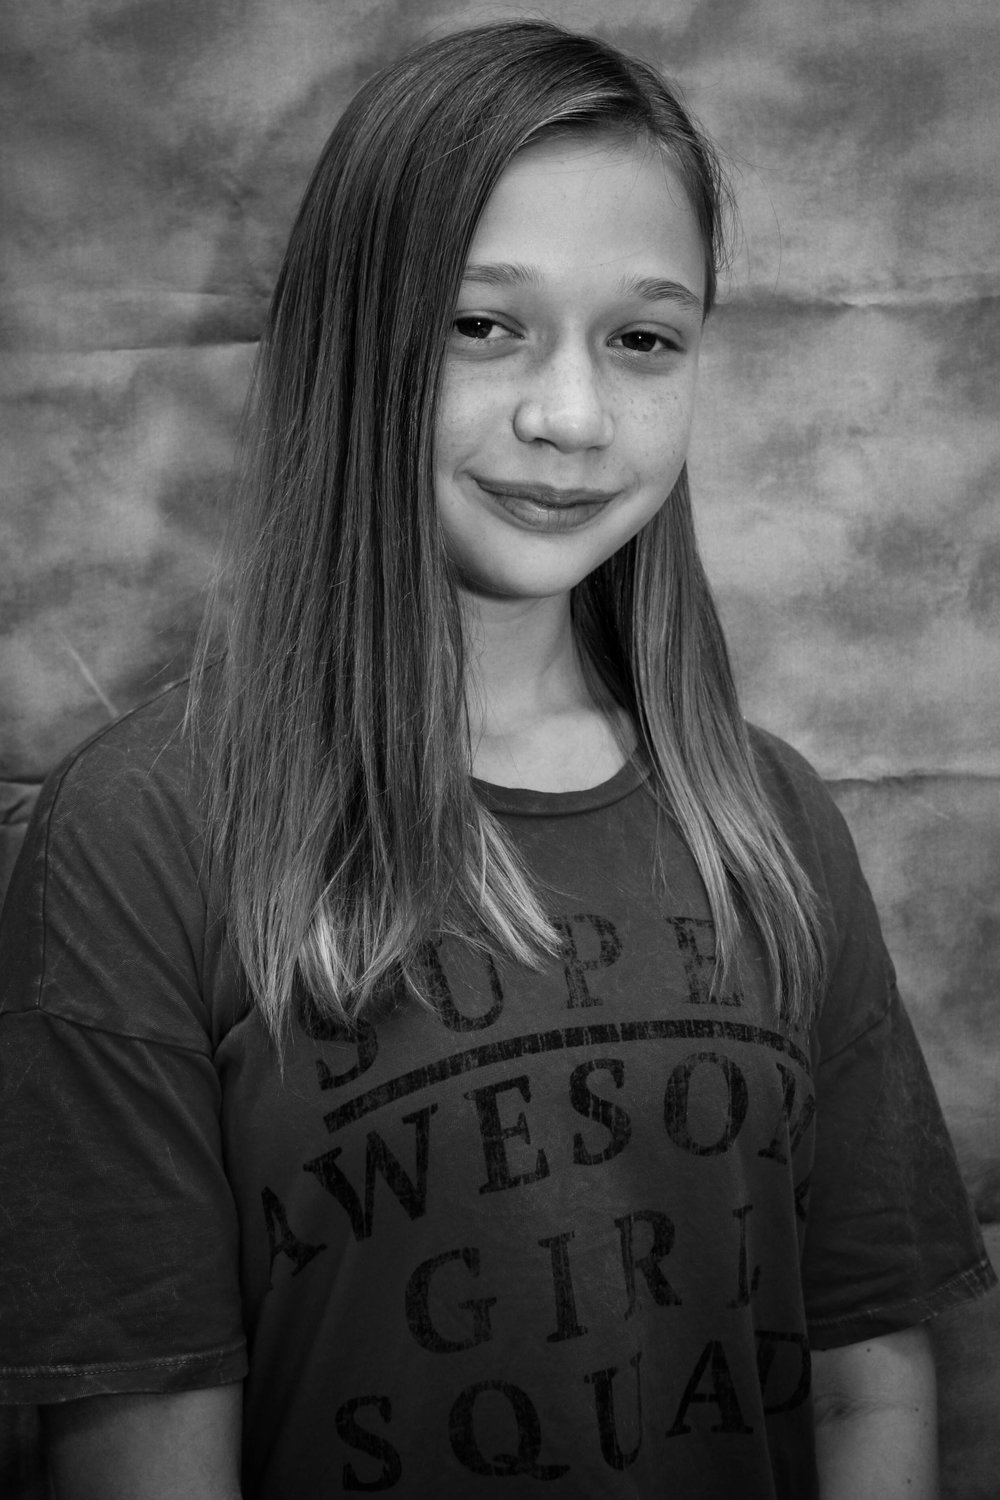 Squirrel, Cook, Candy Dancer - As a sixth grader this is Lucy's first show with Lamar, but not her first show overall. She has been in several shows from Kids Acting Studio. She also has dance experience and is in the Lamar fine arts dance program.